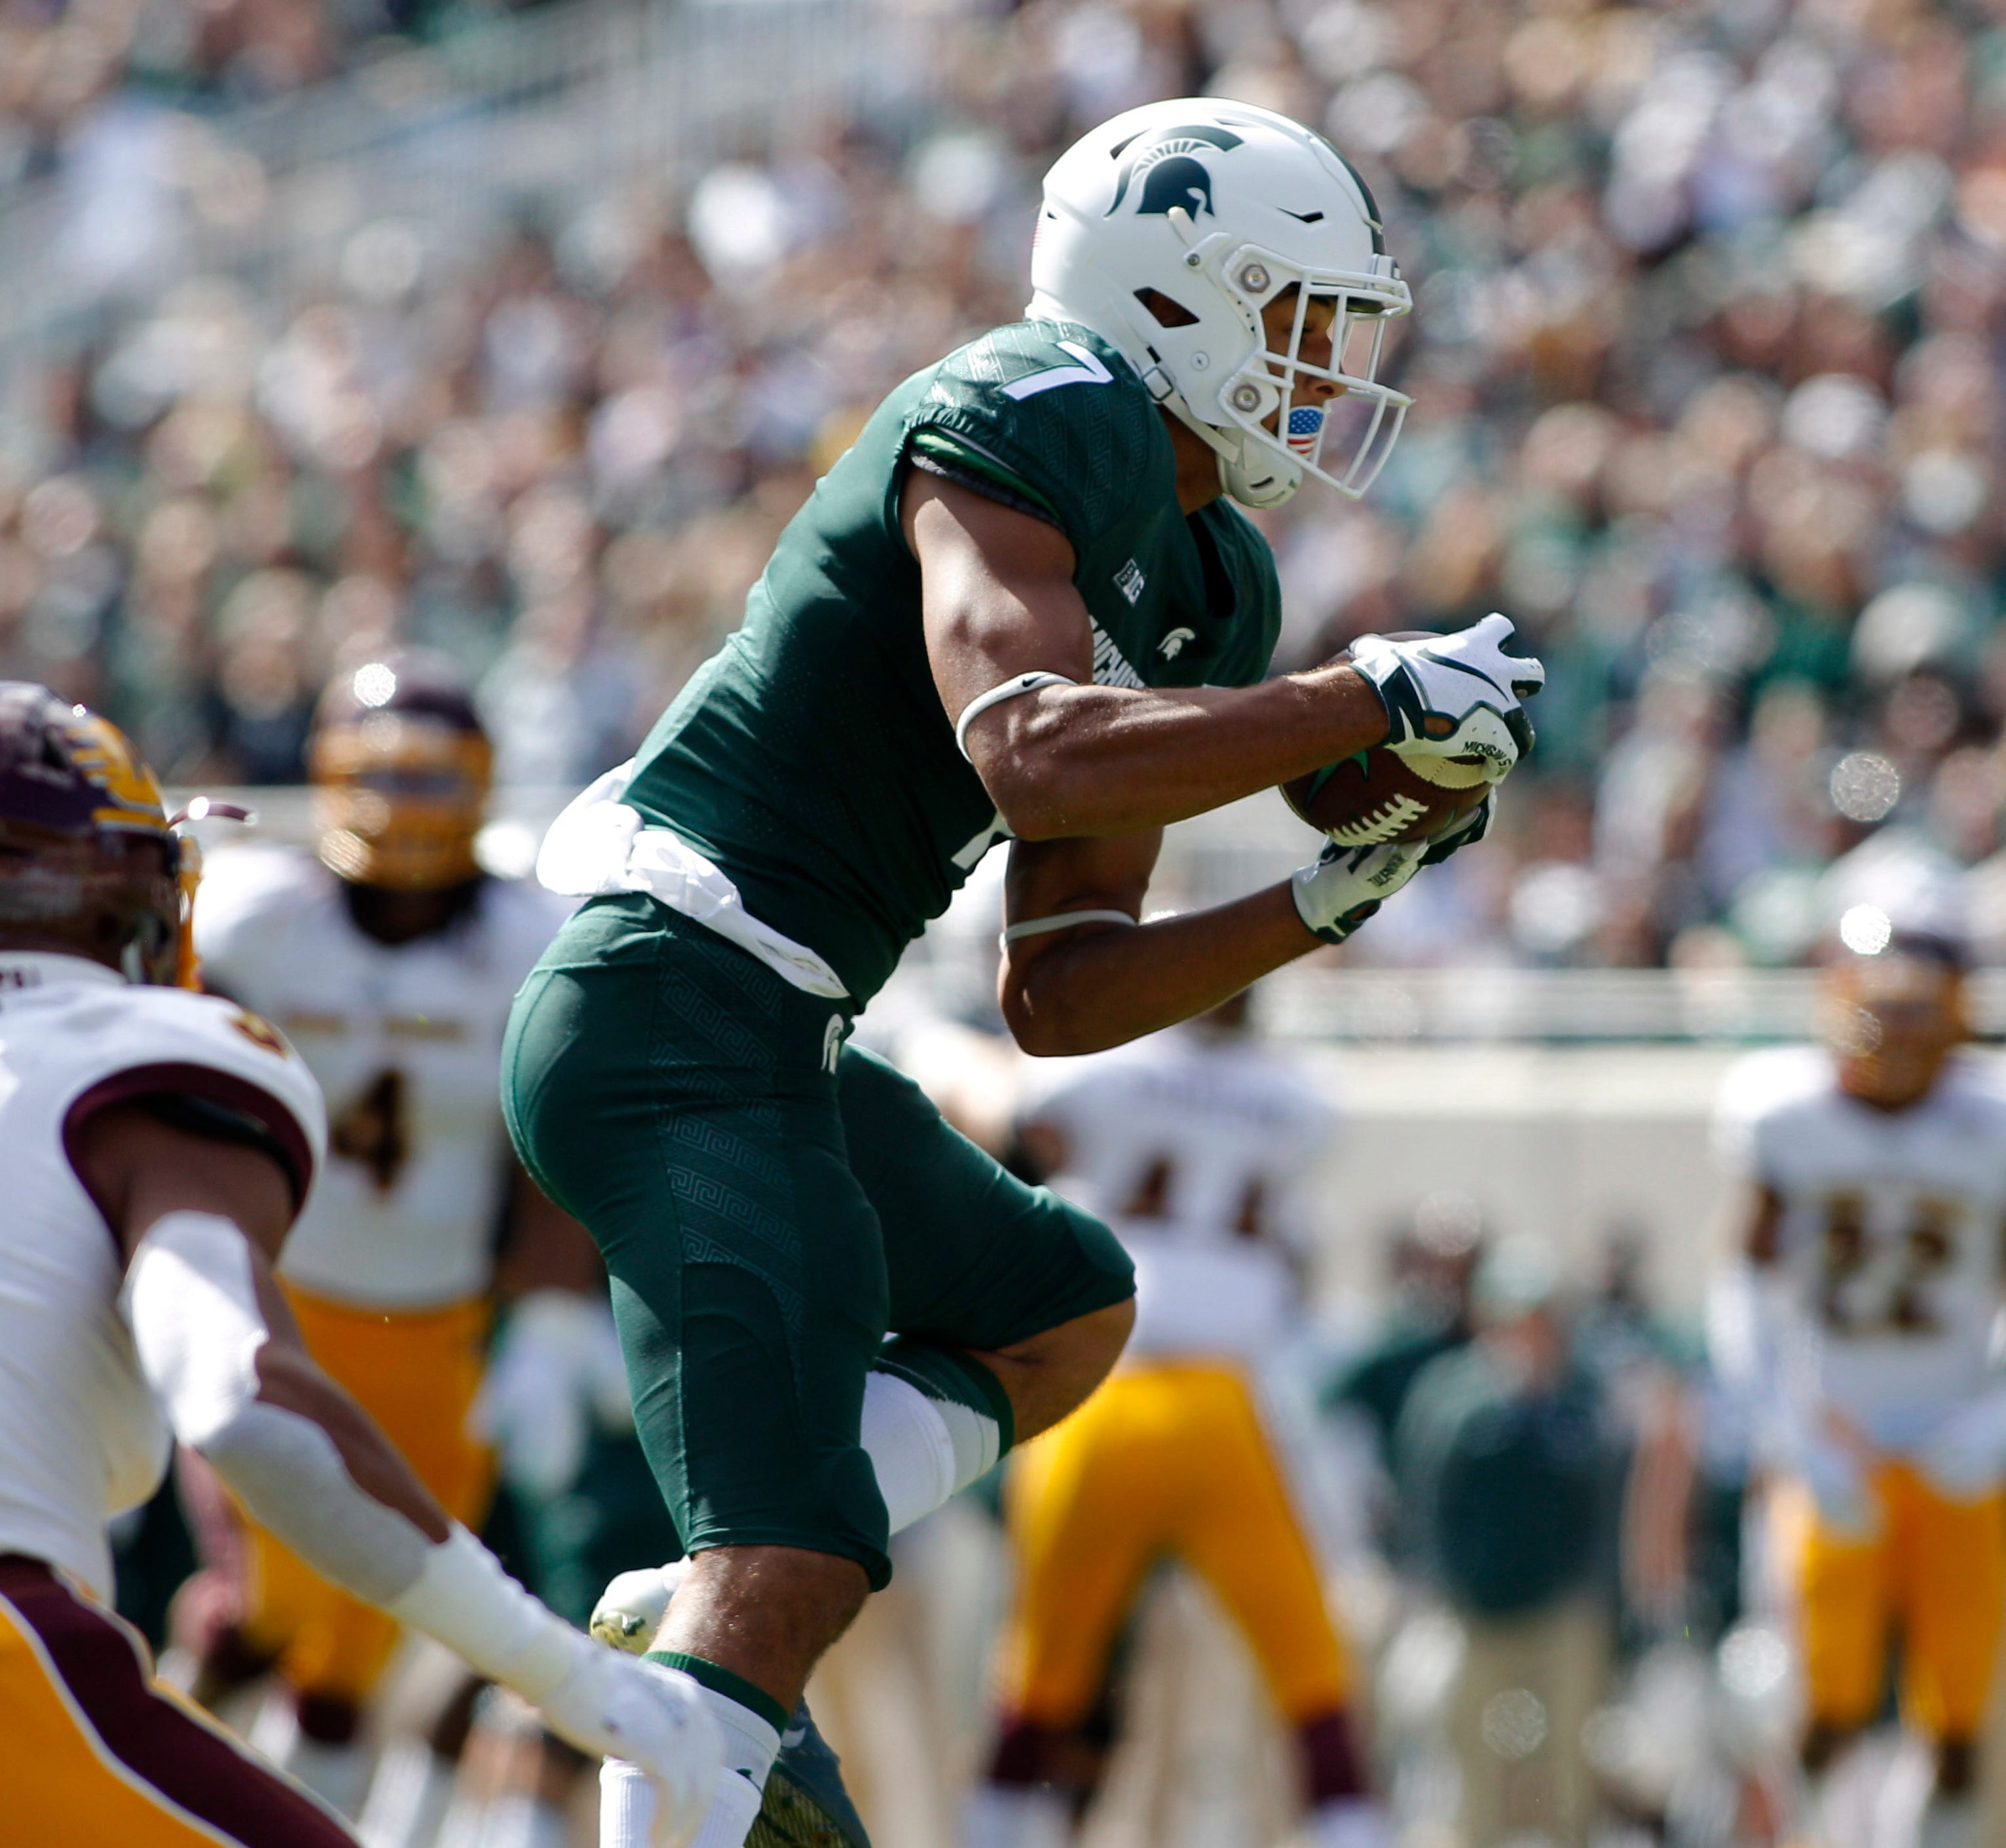 Michigan State's Cody White, right, catches a pass against Central Michigan's Sean Bunting during the second quarter on Saturday, Sept. 29, 2018, at Spartan Stadium.